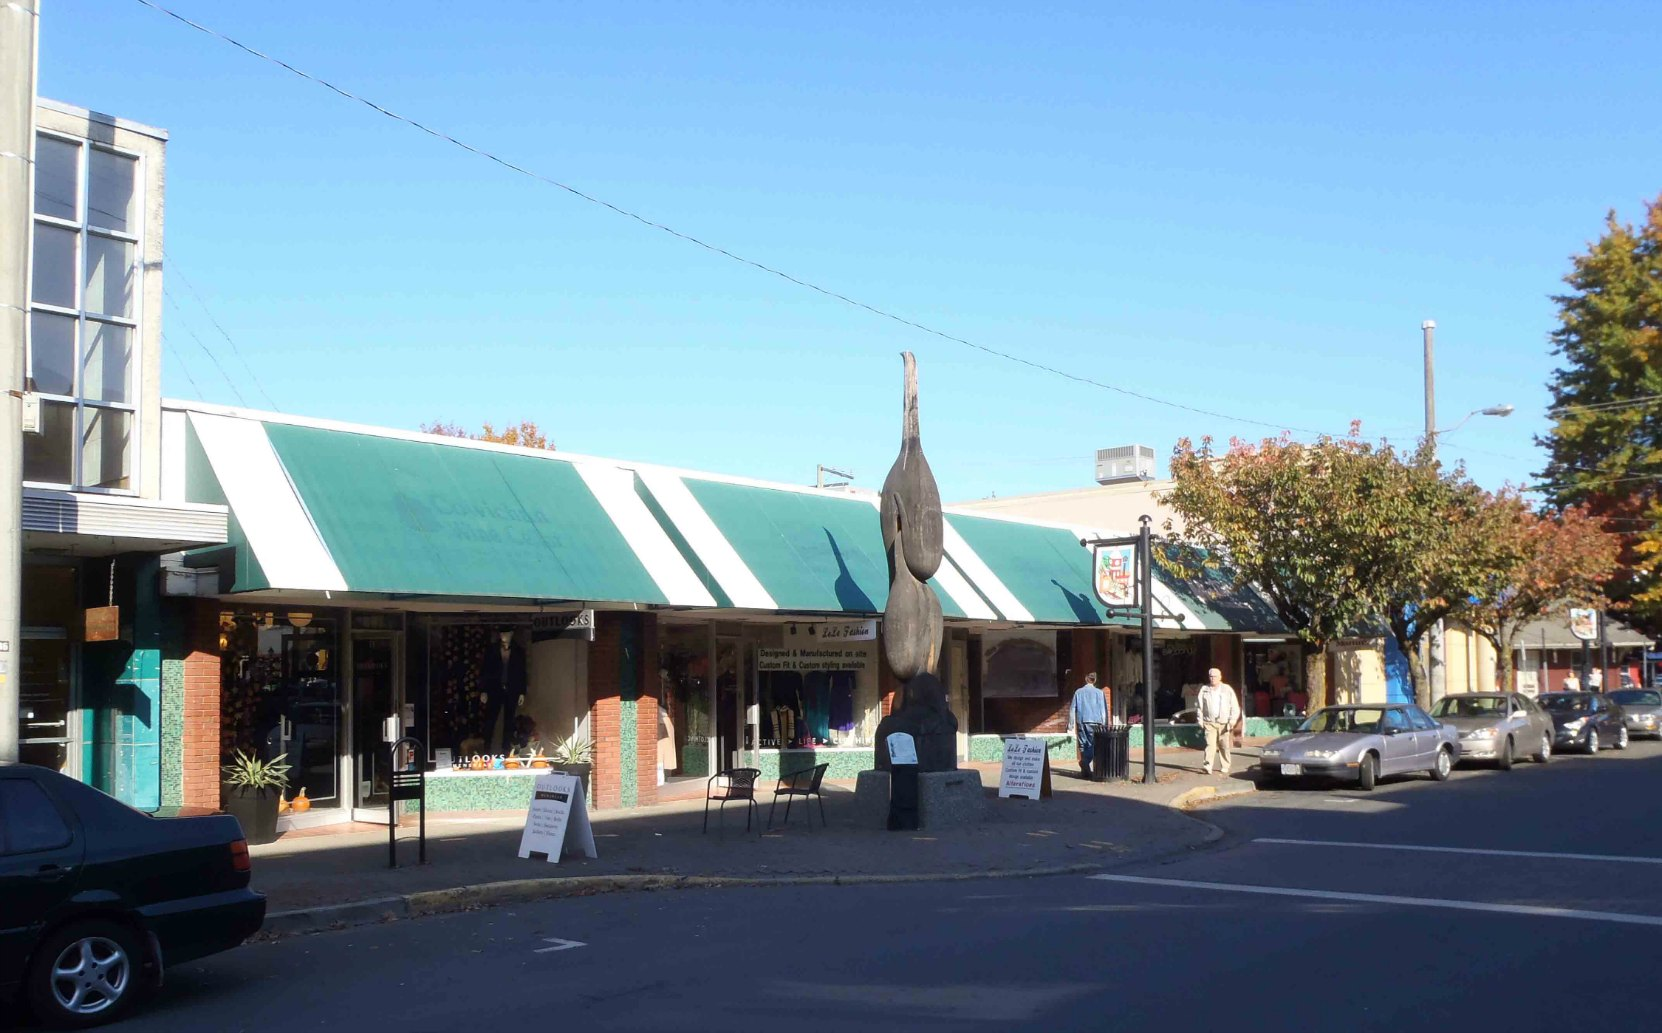 This block of five stores at 33 to 53 Station Street was built by Cowichan Estates Ltd. in 1959